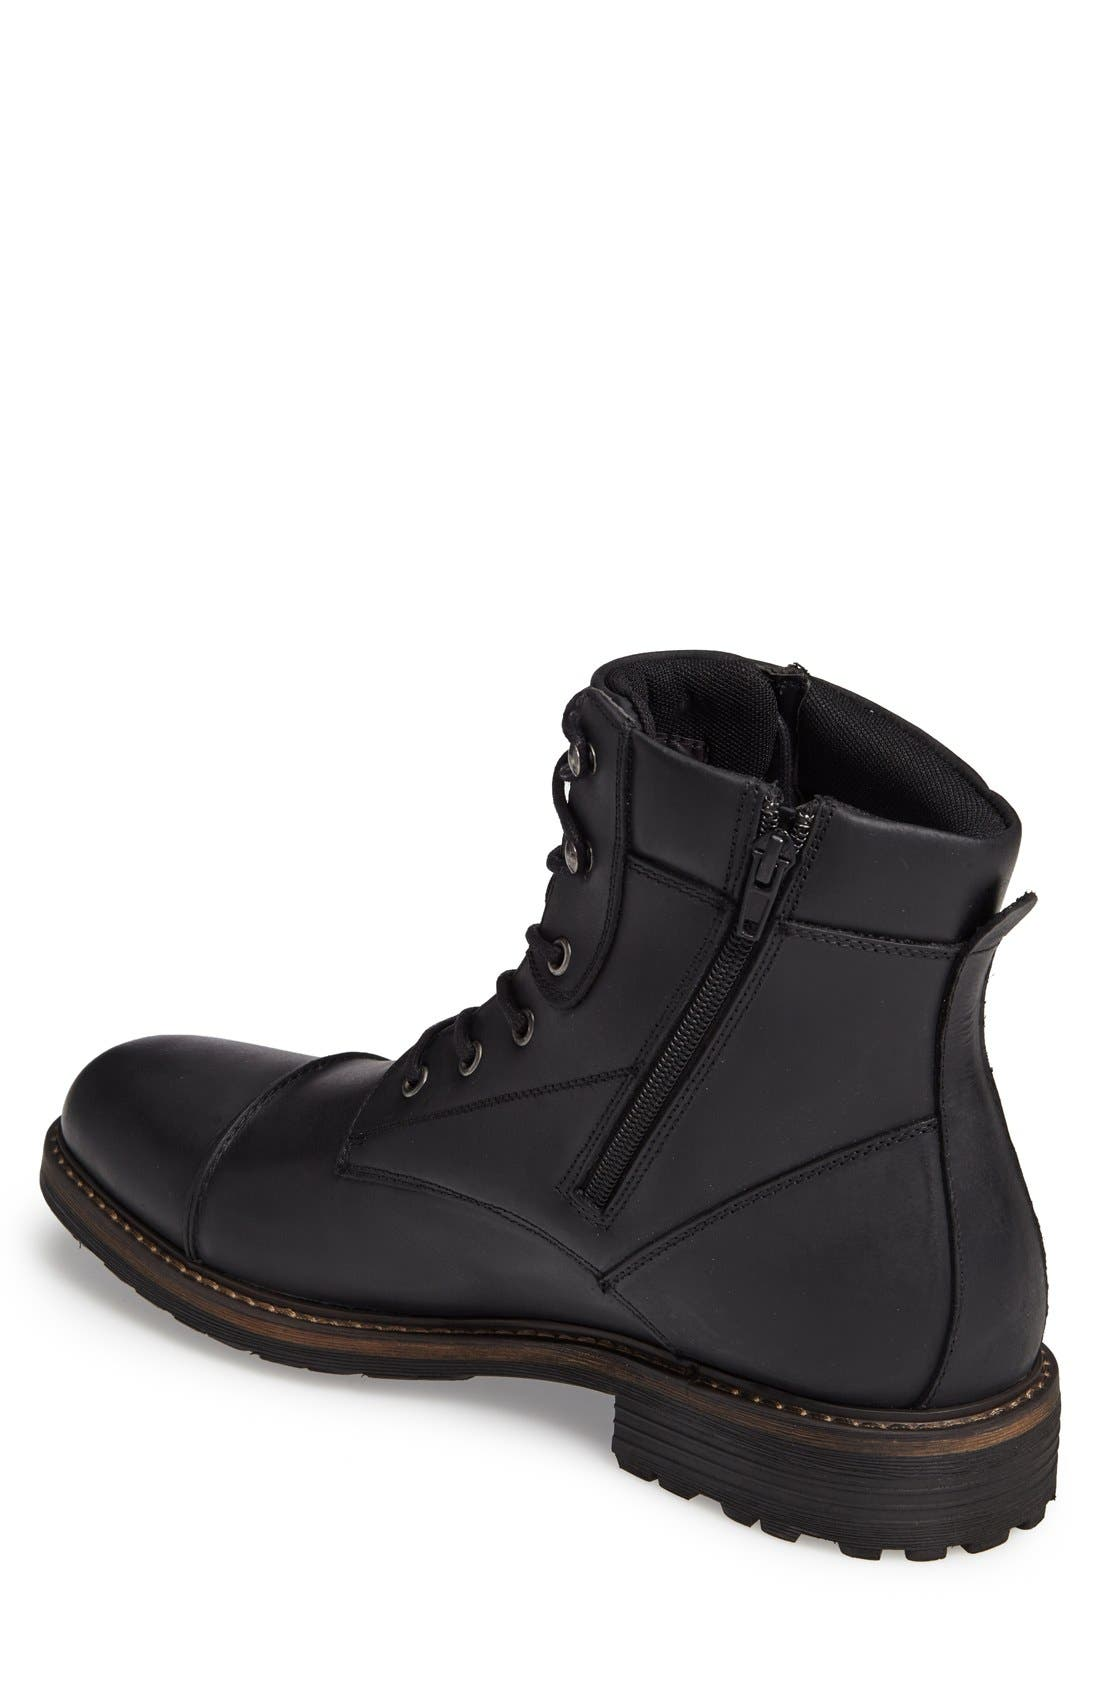 Derek Cap Toe Boot,                             Alternate thumbnail 3, color,                             Black Leather